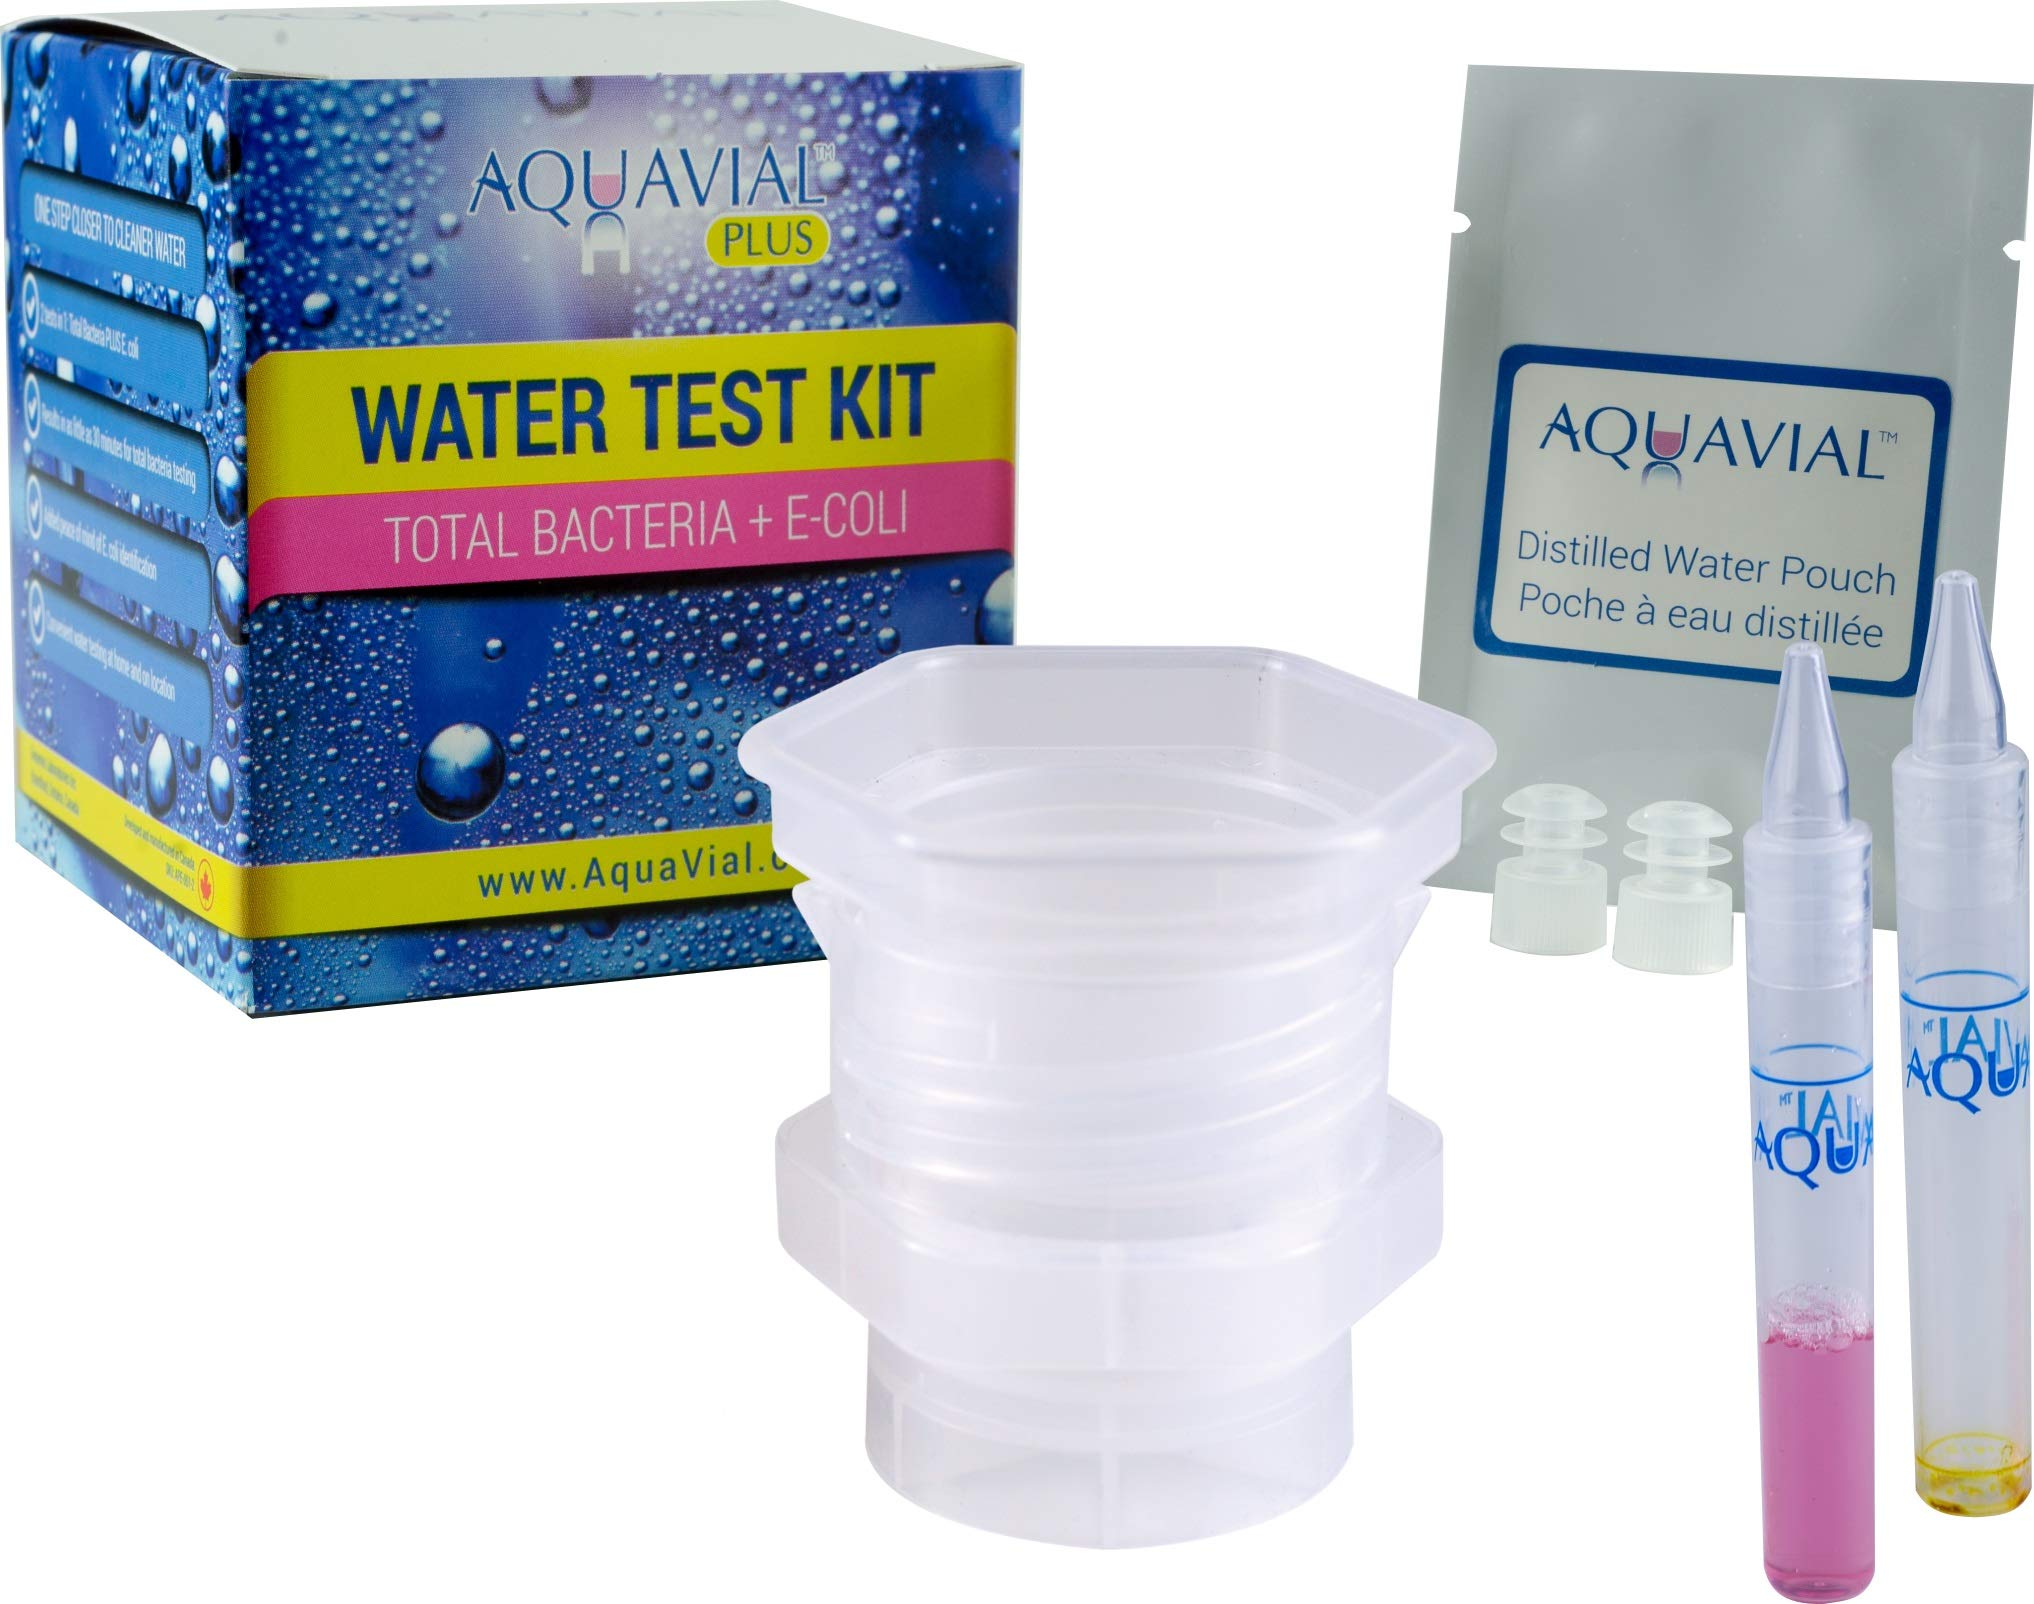 Aquavial Plus | Water Test Kit for Total Bacteria & E. Coli in Drinking & Pool Water | 2 Tests in 1 by AquaVial